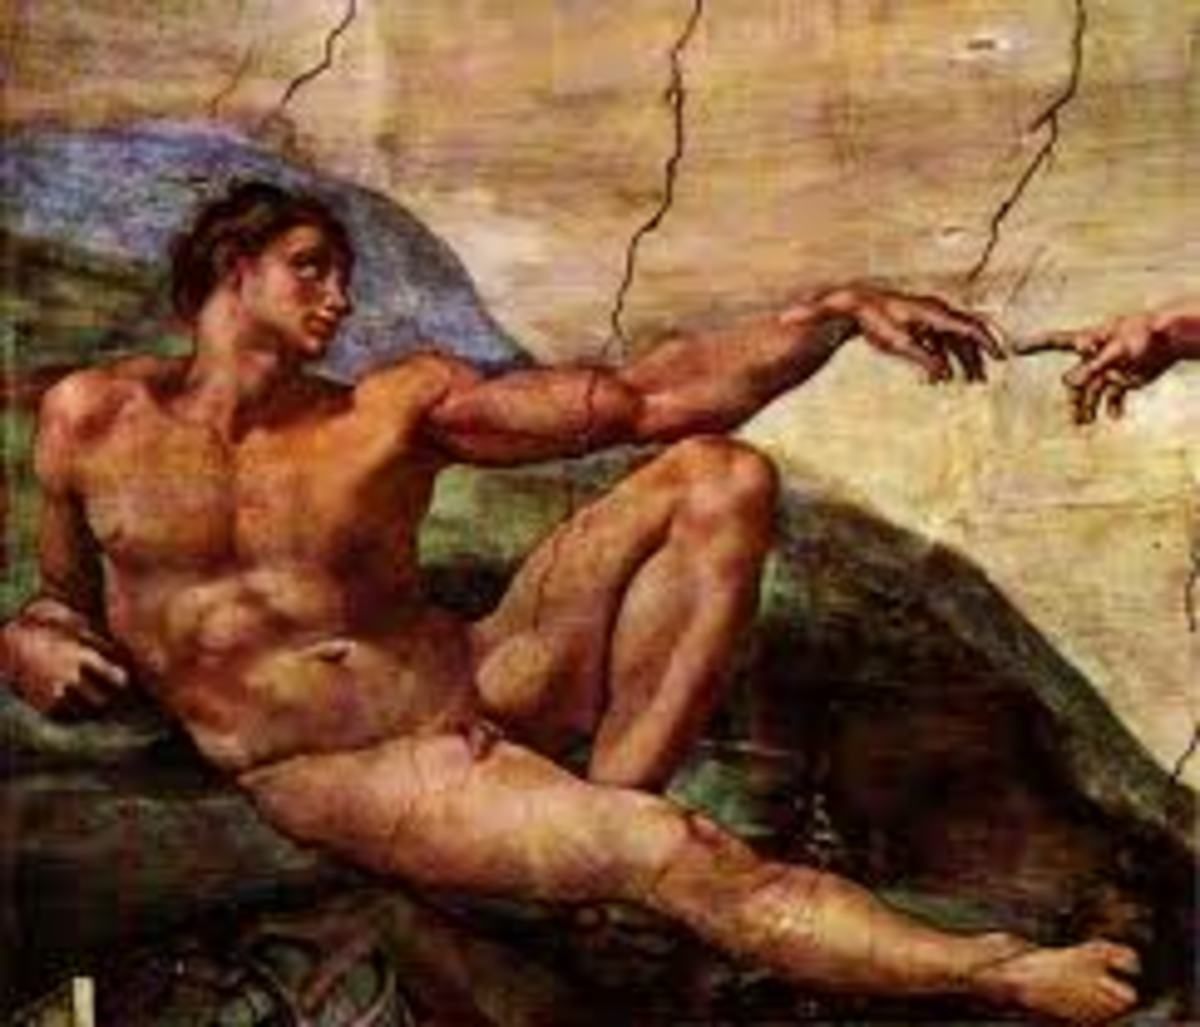 The awakening of Adam Michelangelo